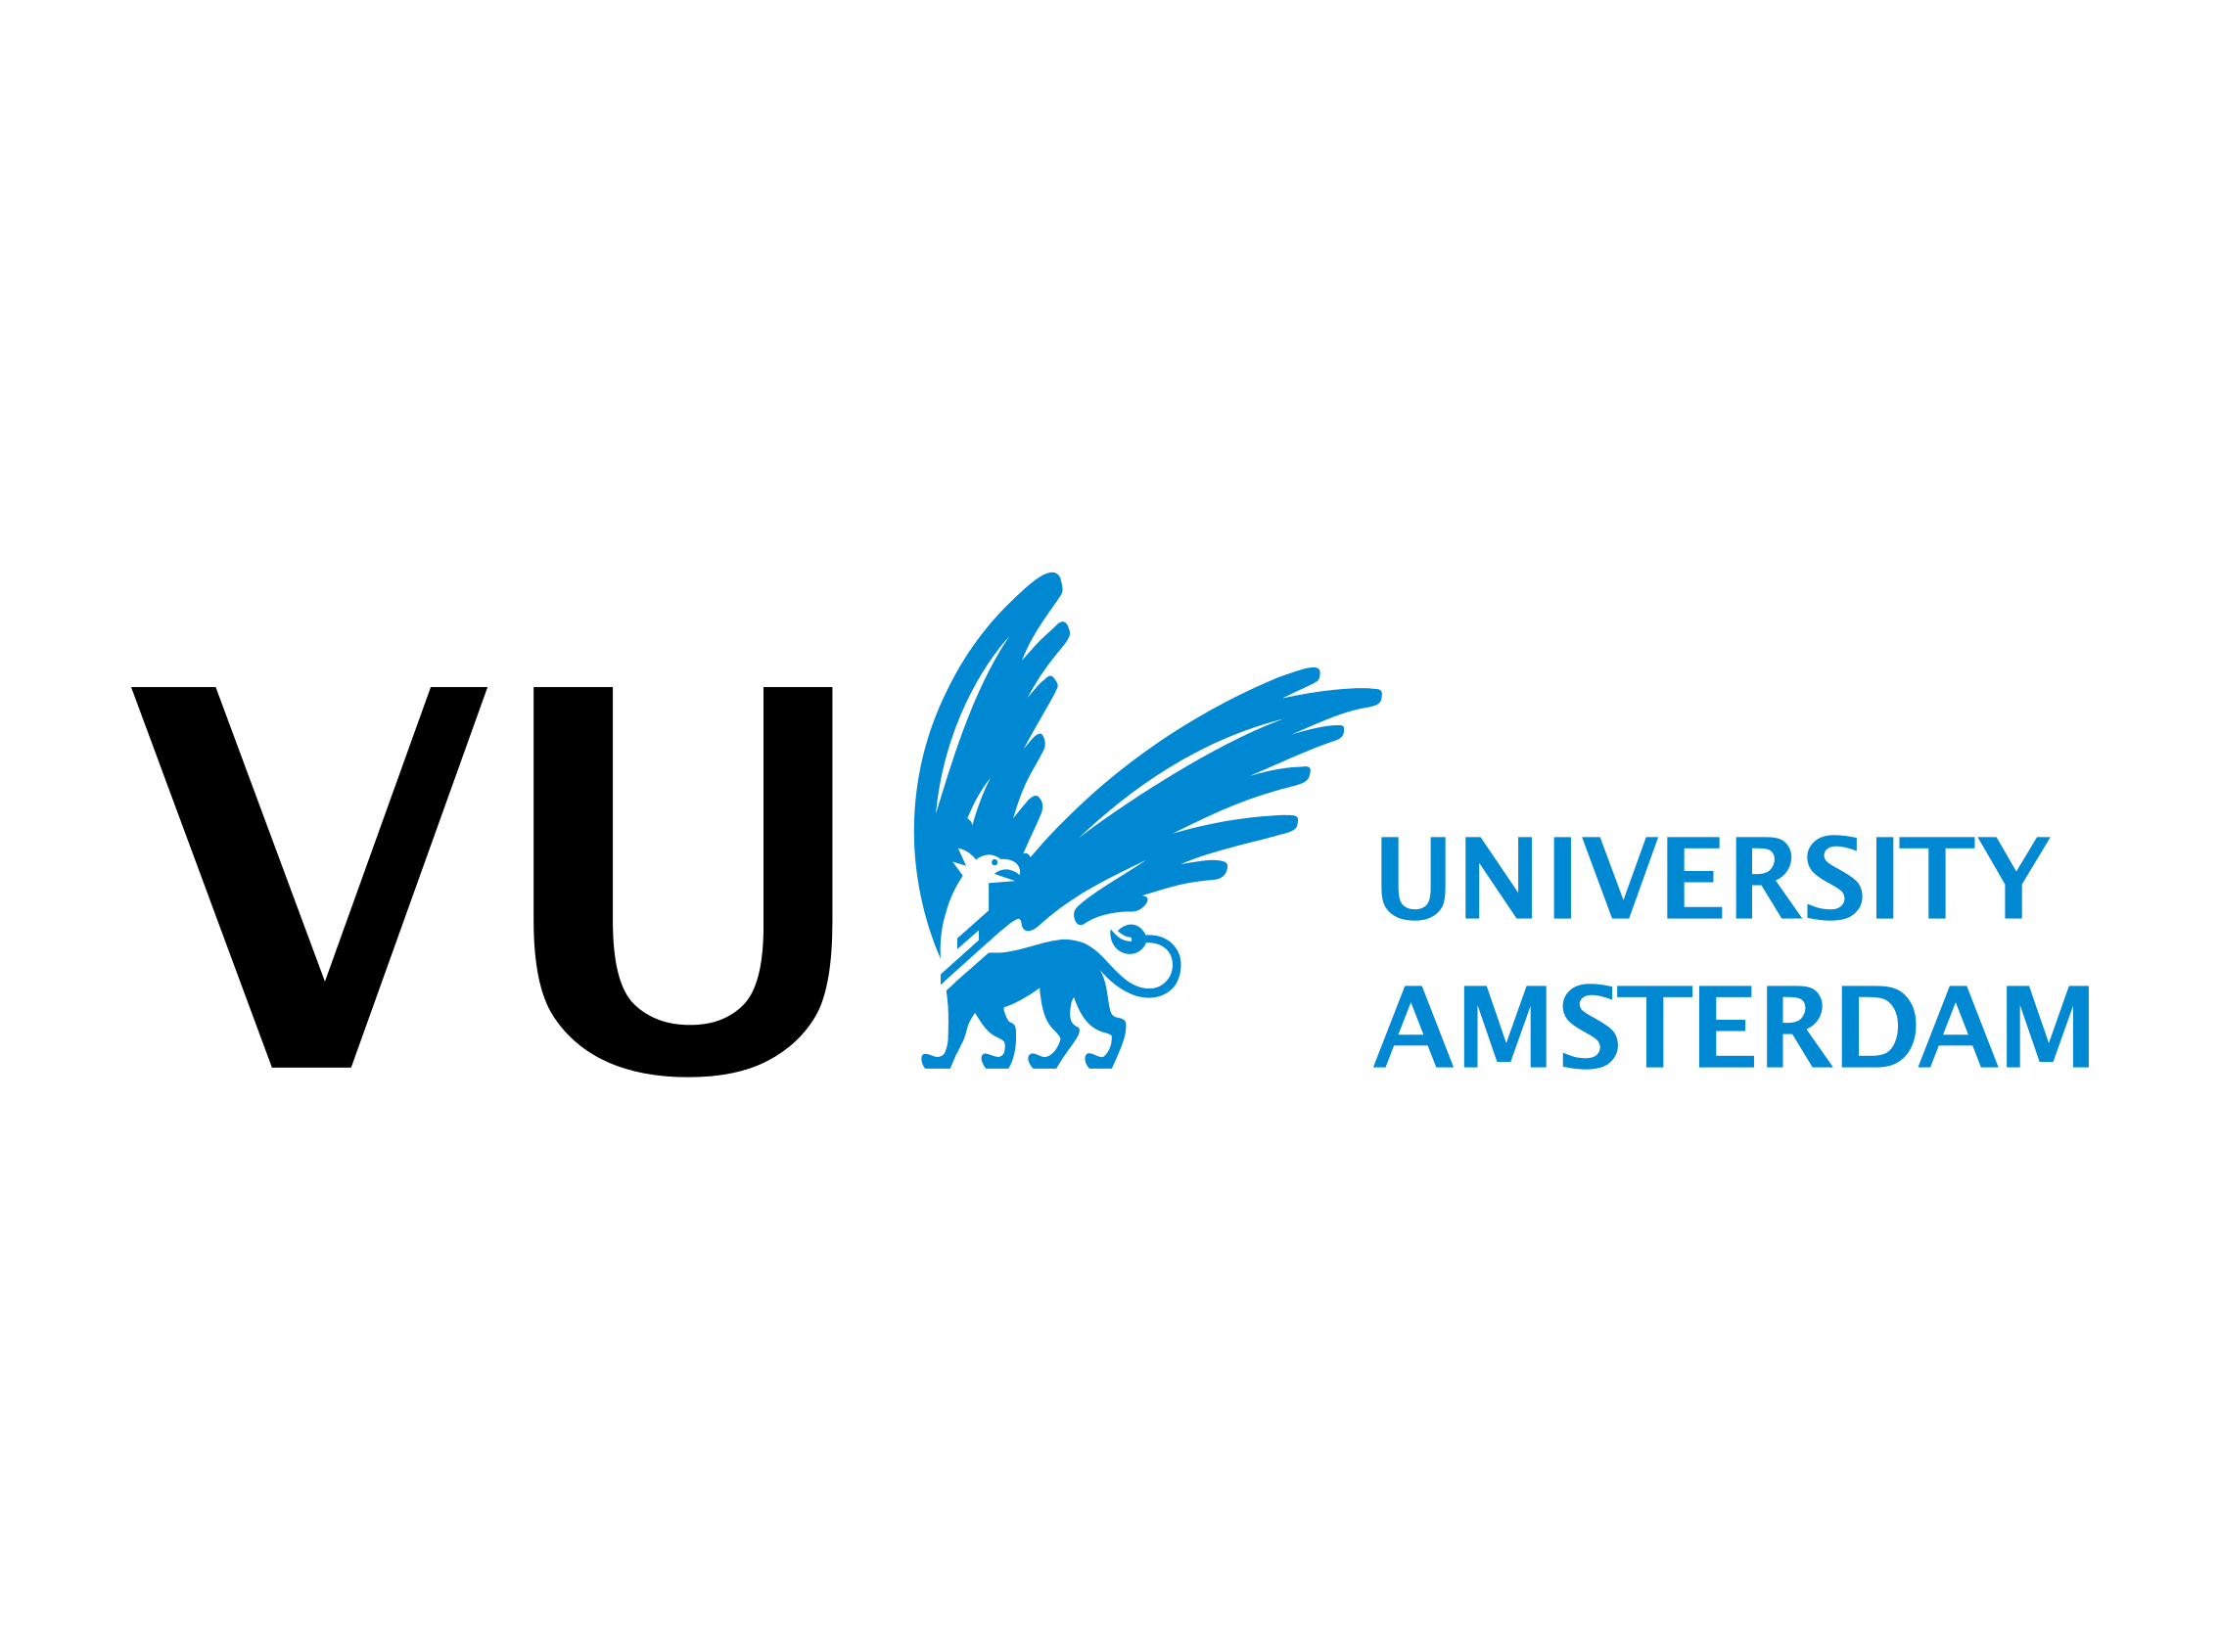 B20160615_VU-University-Amsterdam-logo GB